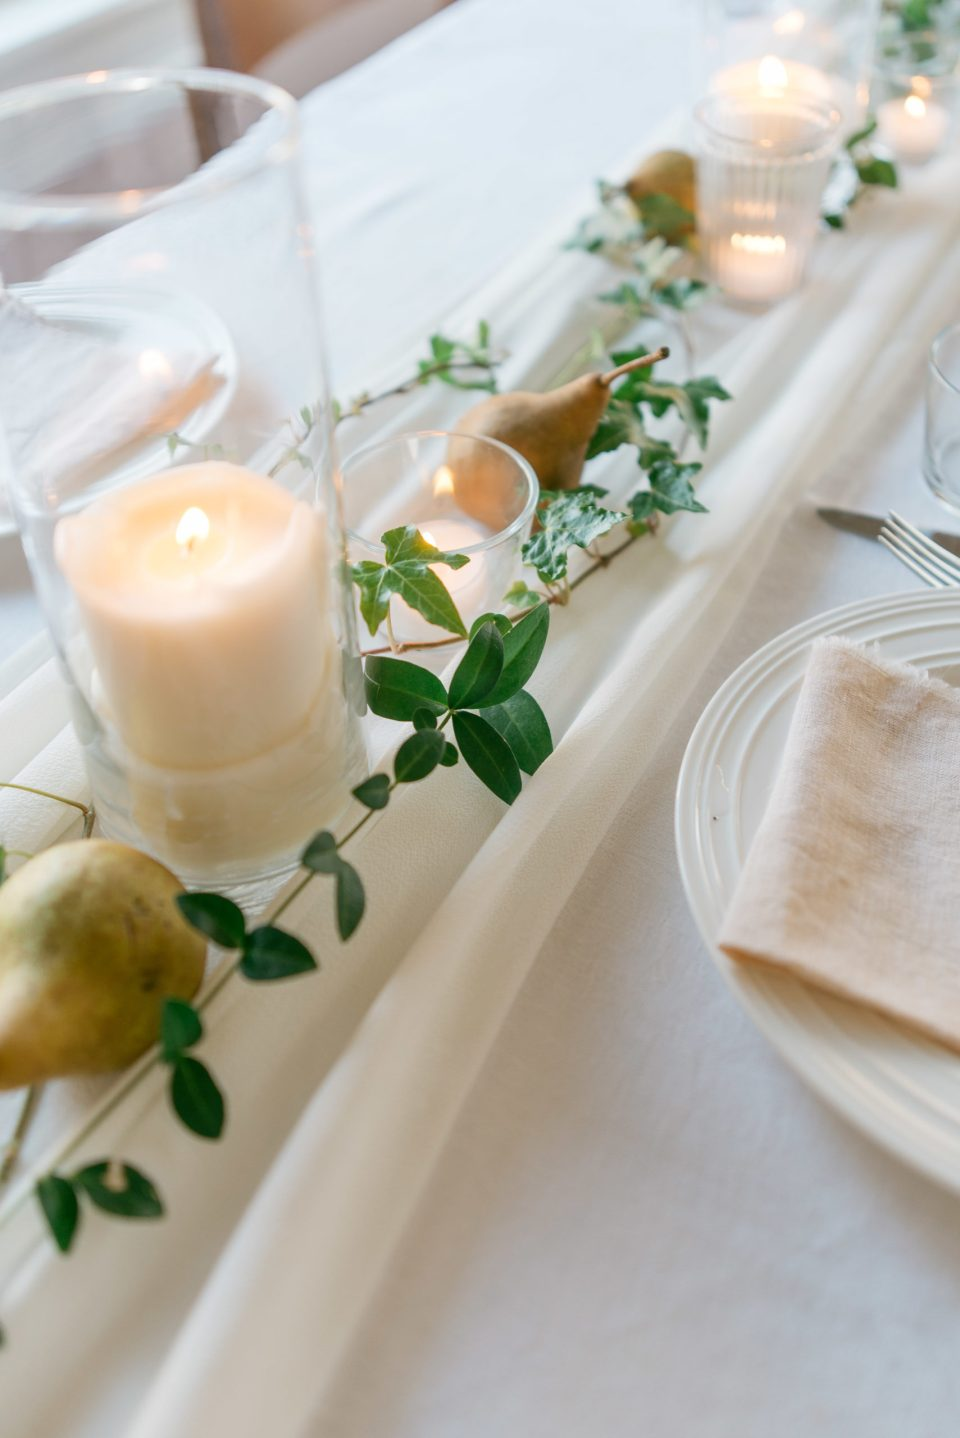 Centrepieces for Rectangular Tables | Delicate Garland | Garland for Weddings | Table Greenery